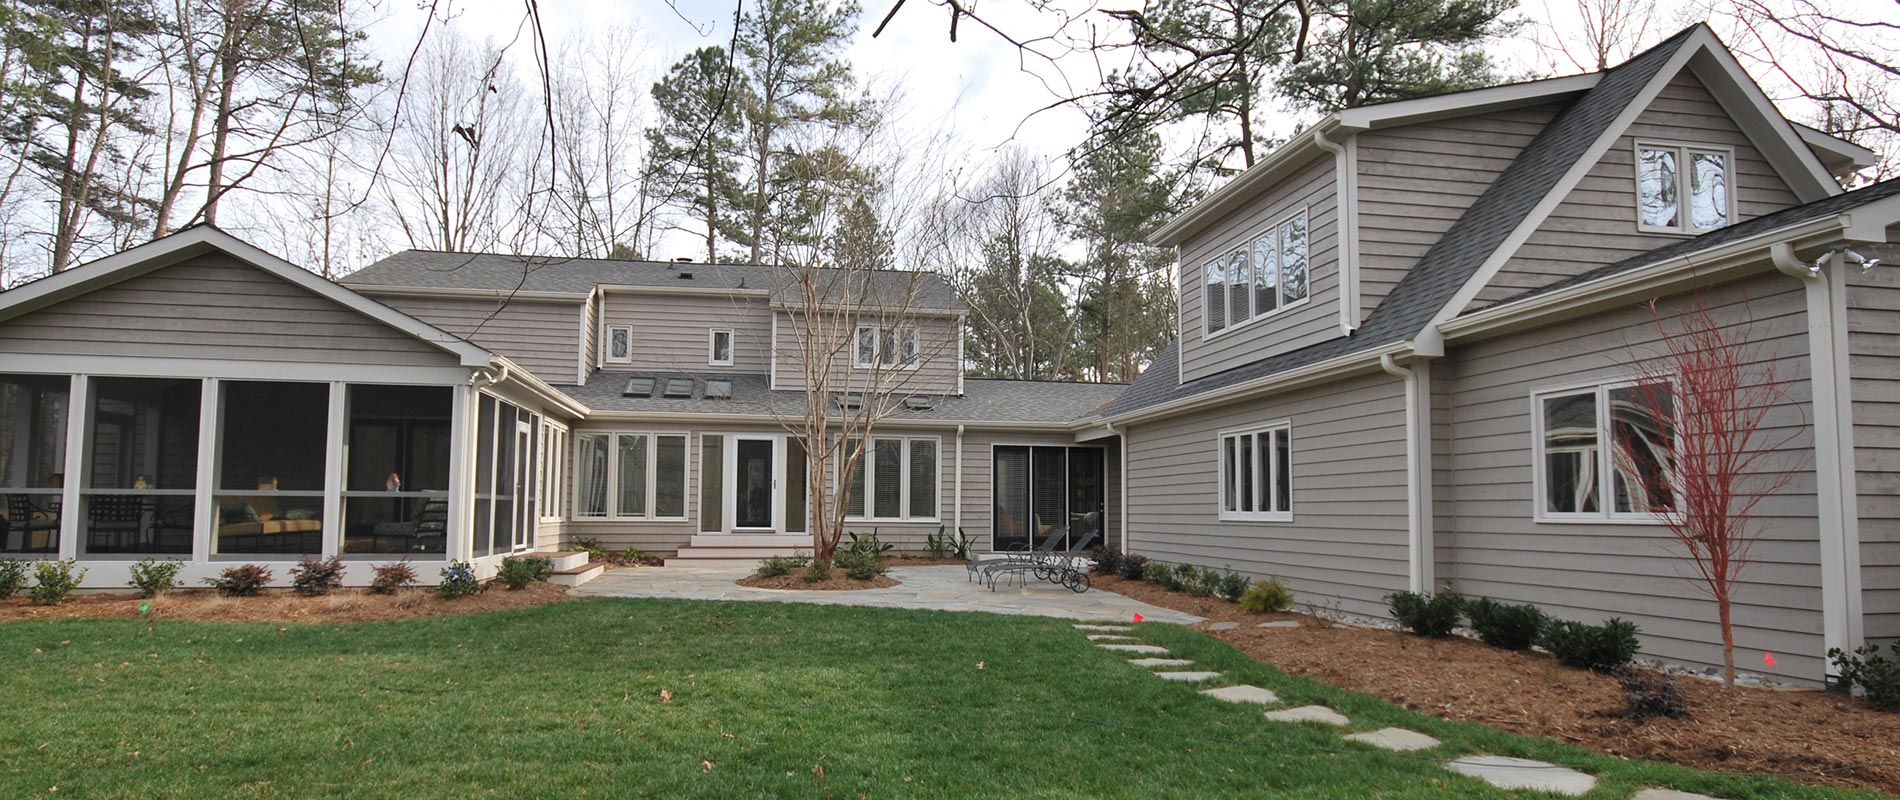 Exterior House Remodel | Complete Construction Company | Apex, NC